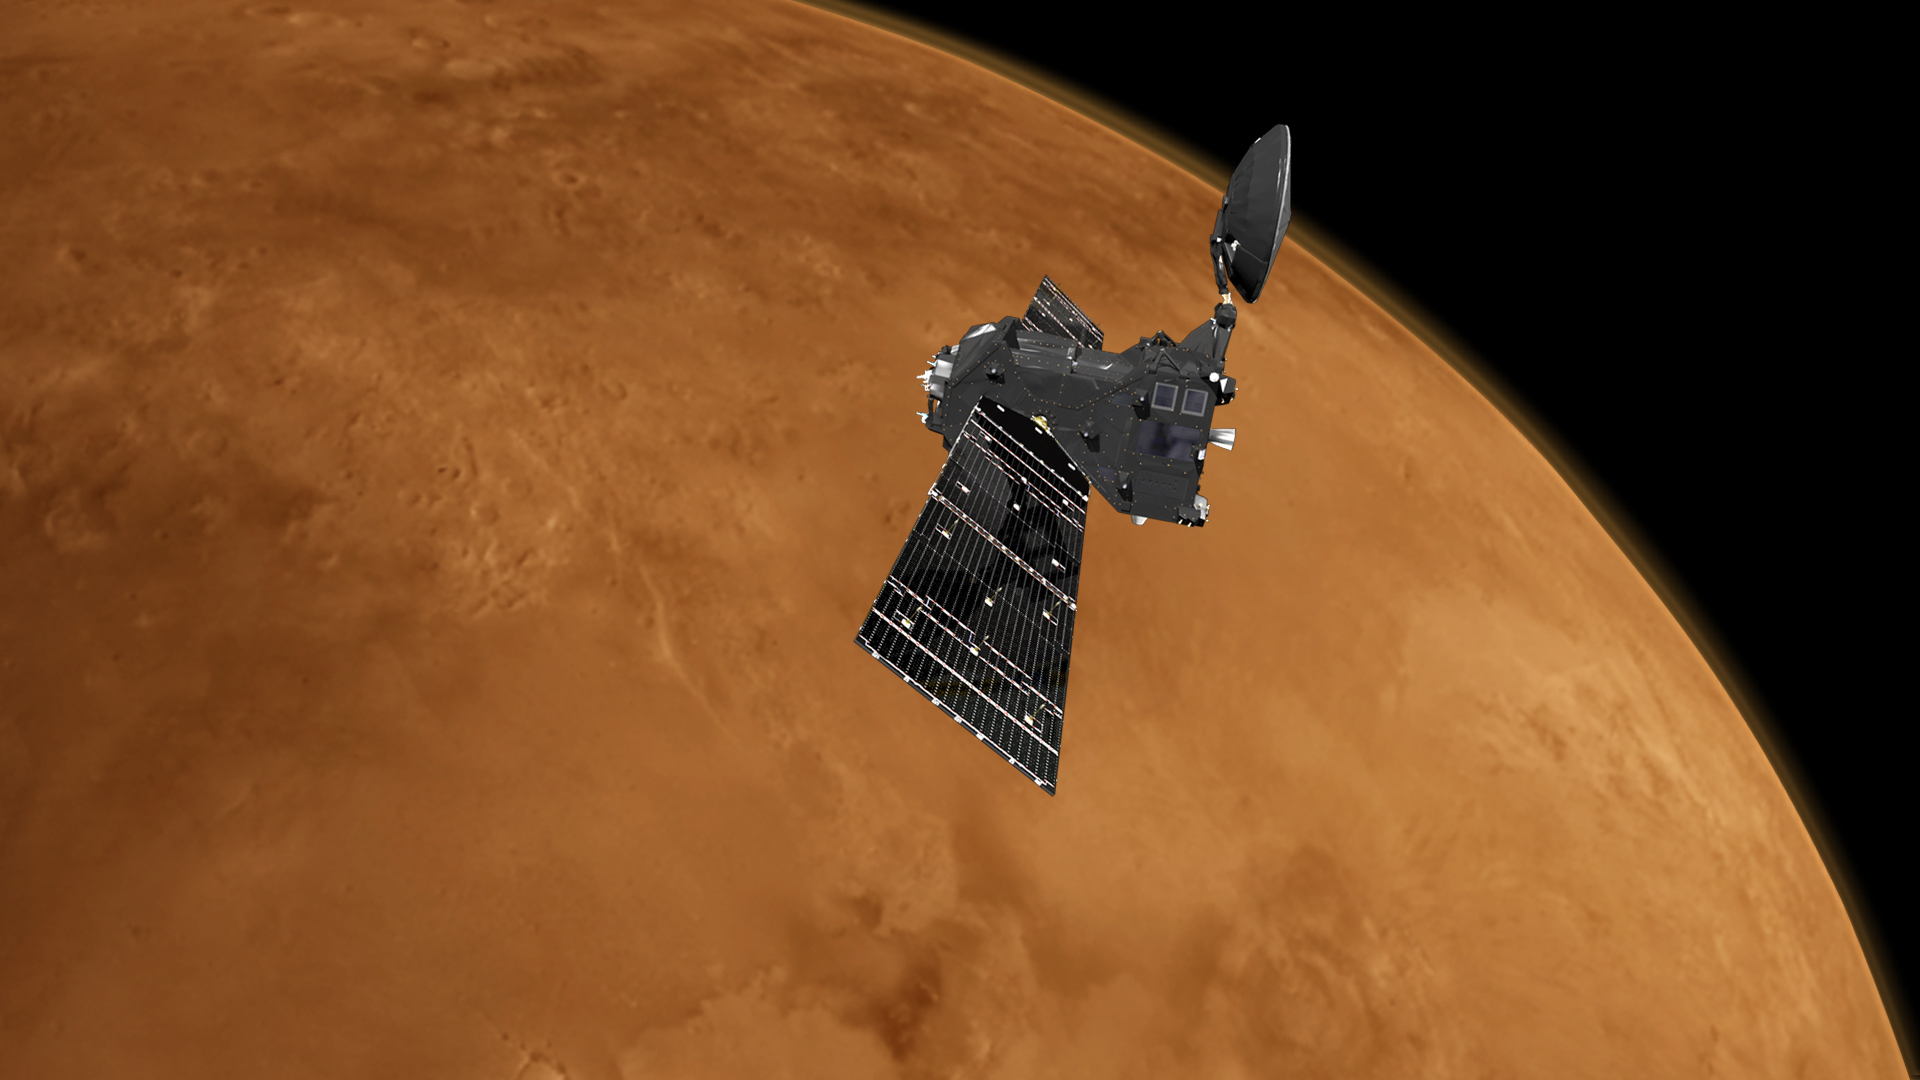 Artist's concept of Europe's ExoMars Trace Gas Orbiter at Mars. Credit: ESA/ATG medialab